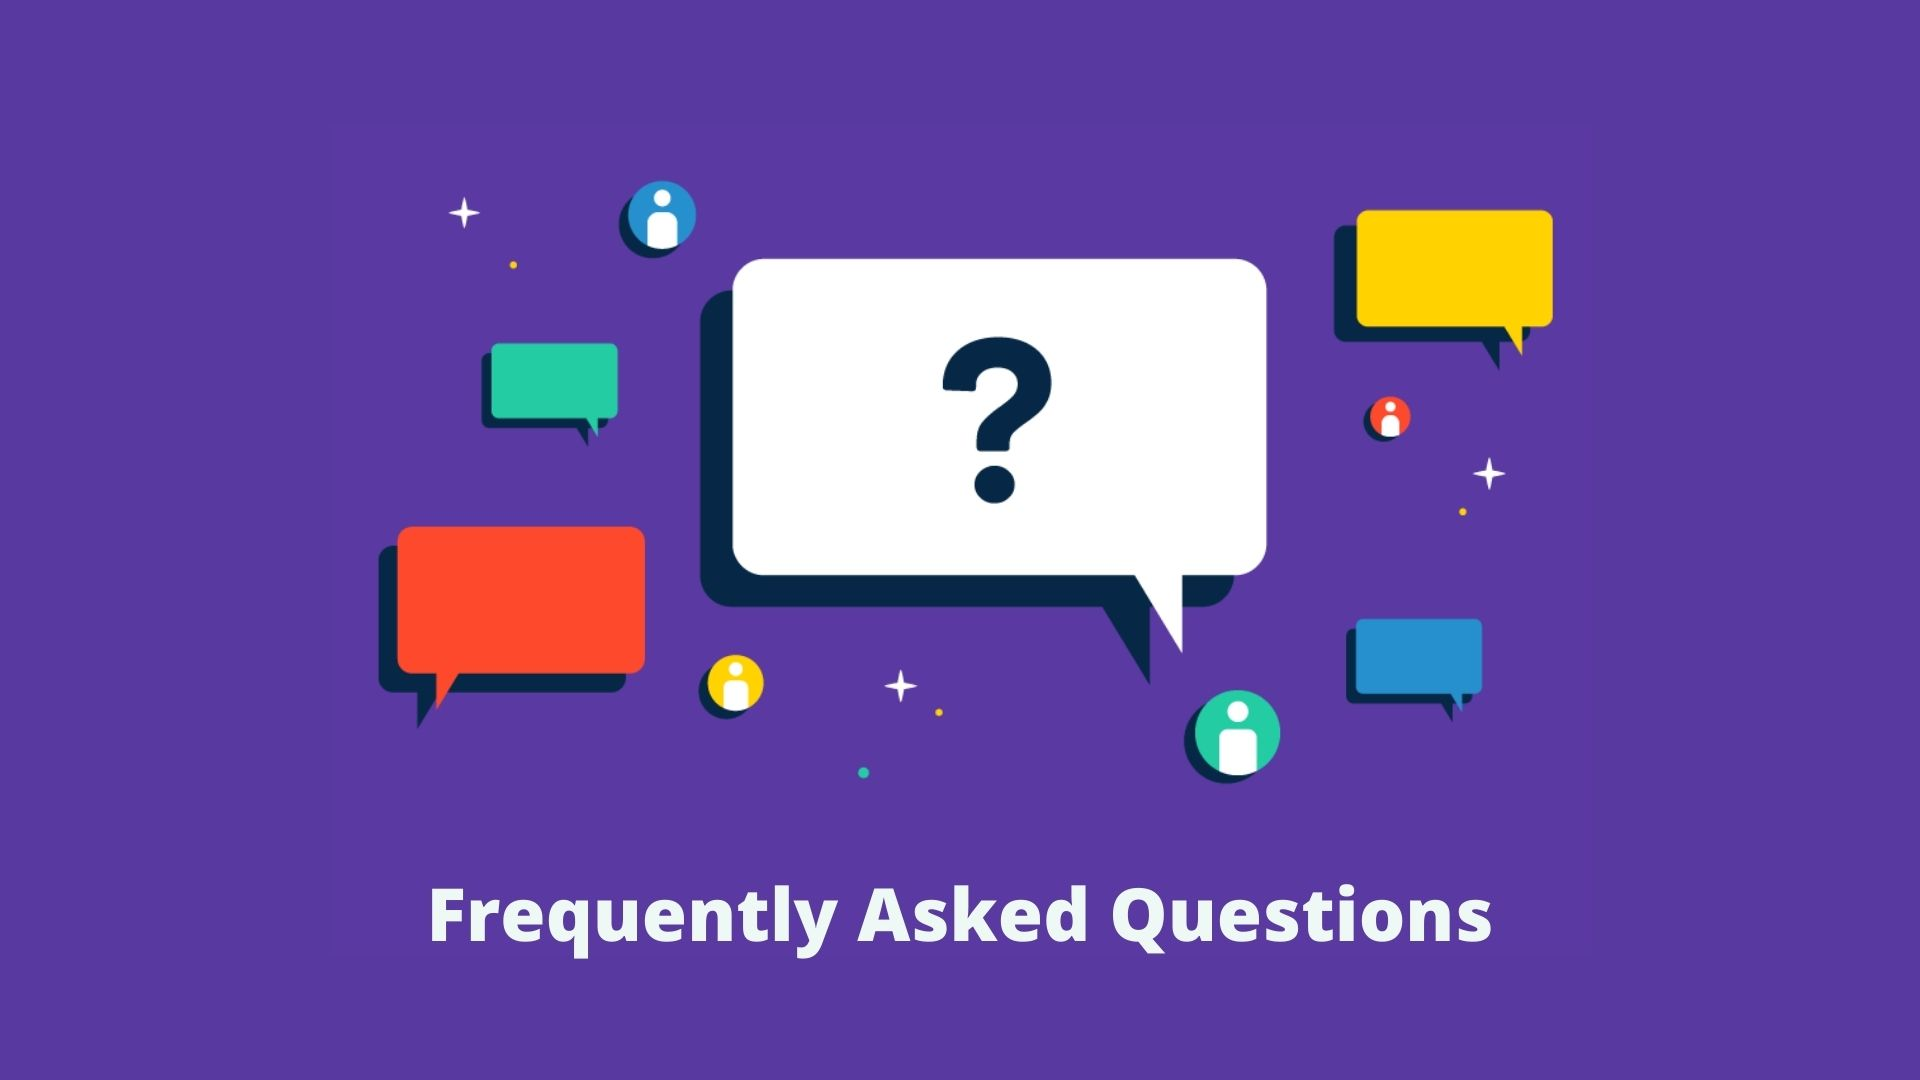 What are Frequently Asked Questions?